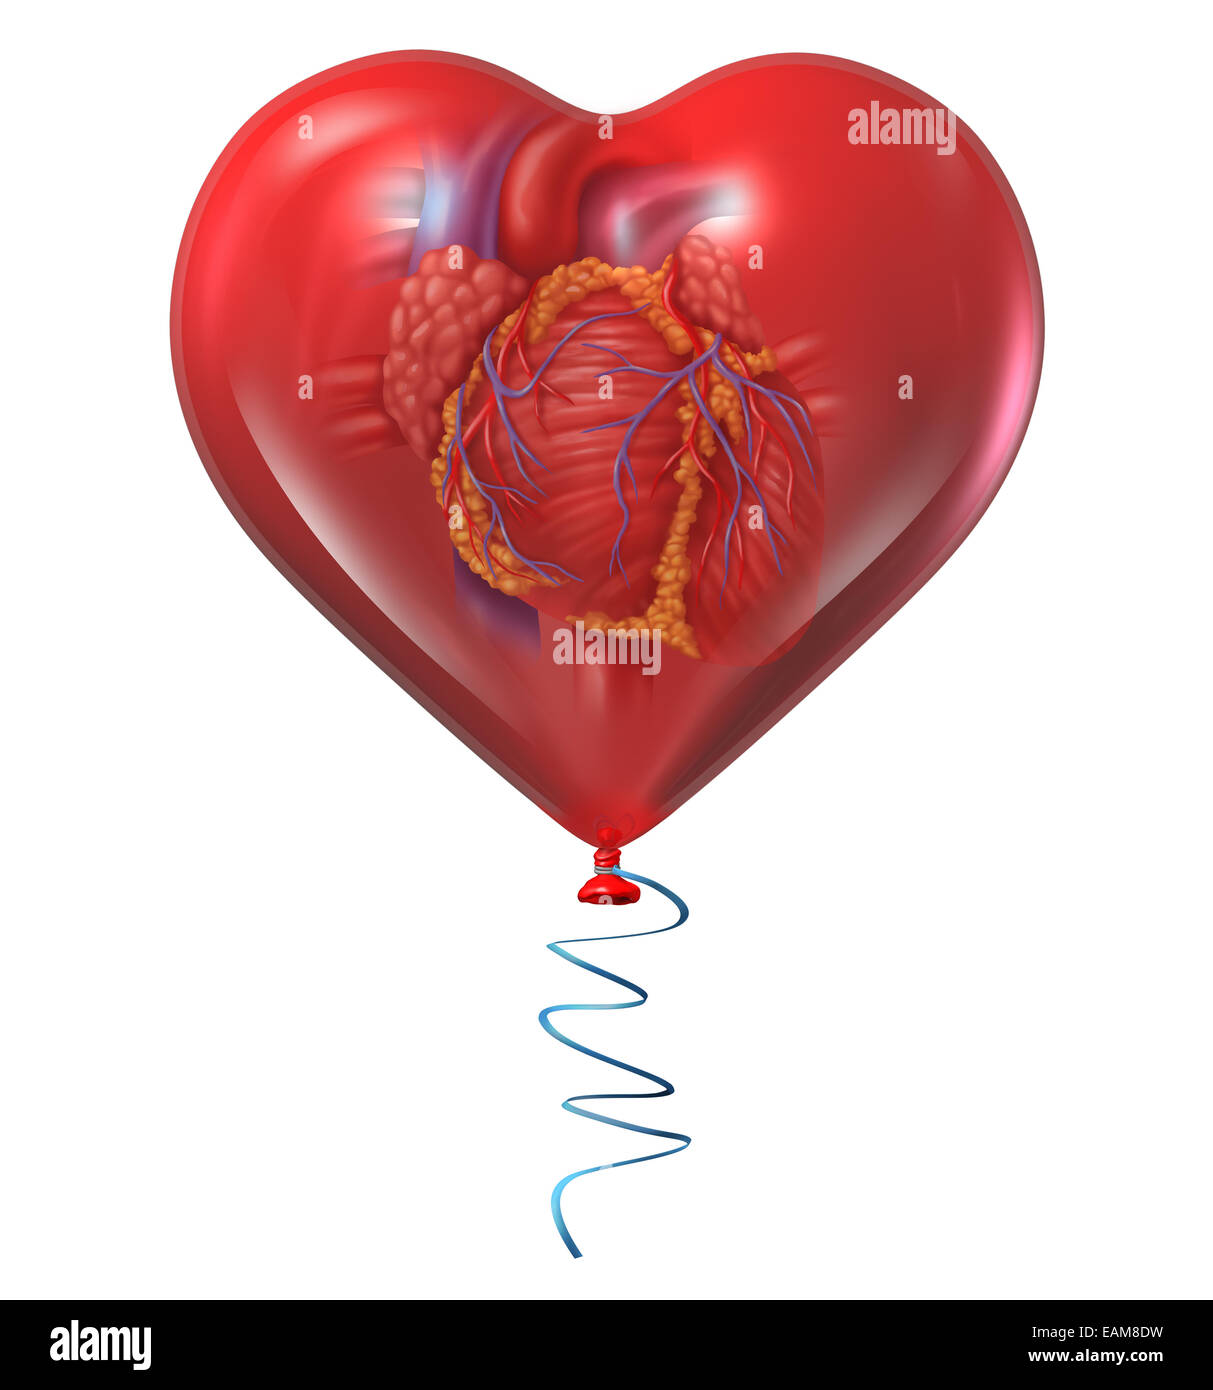 Heart health concept and medical symbol with a human anatomical organ inside a red balloon as an icon for circulatory - Stock Image